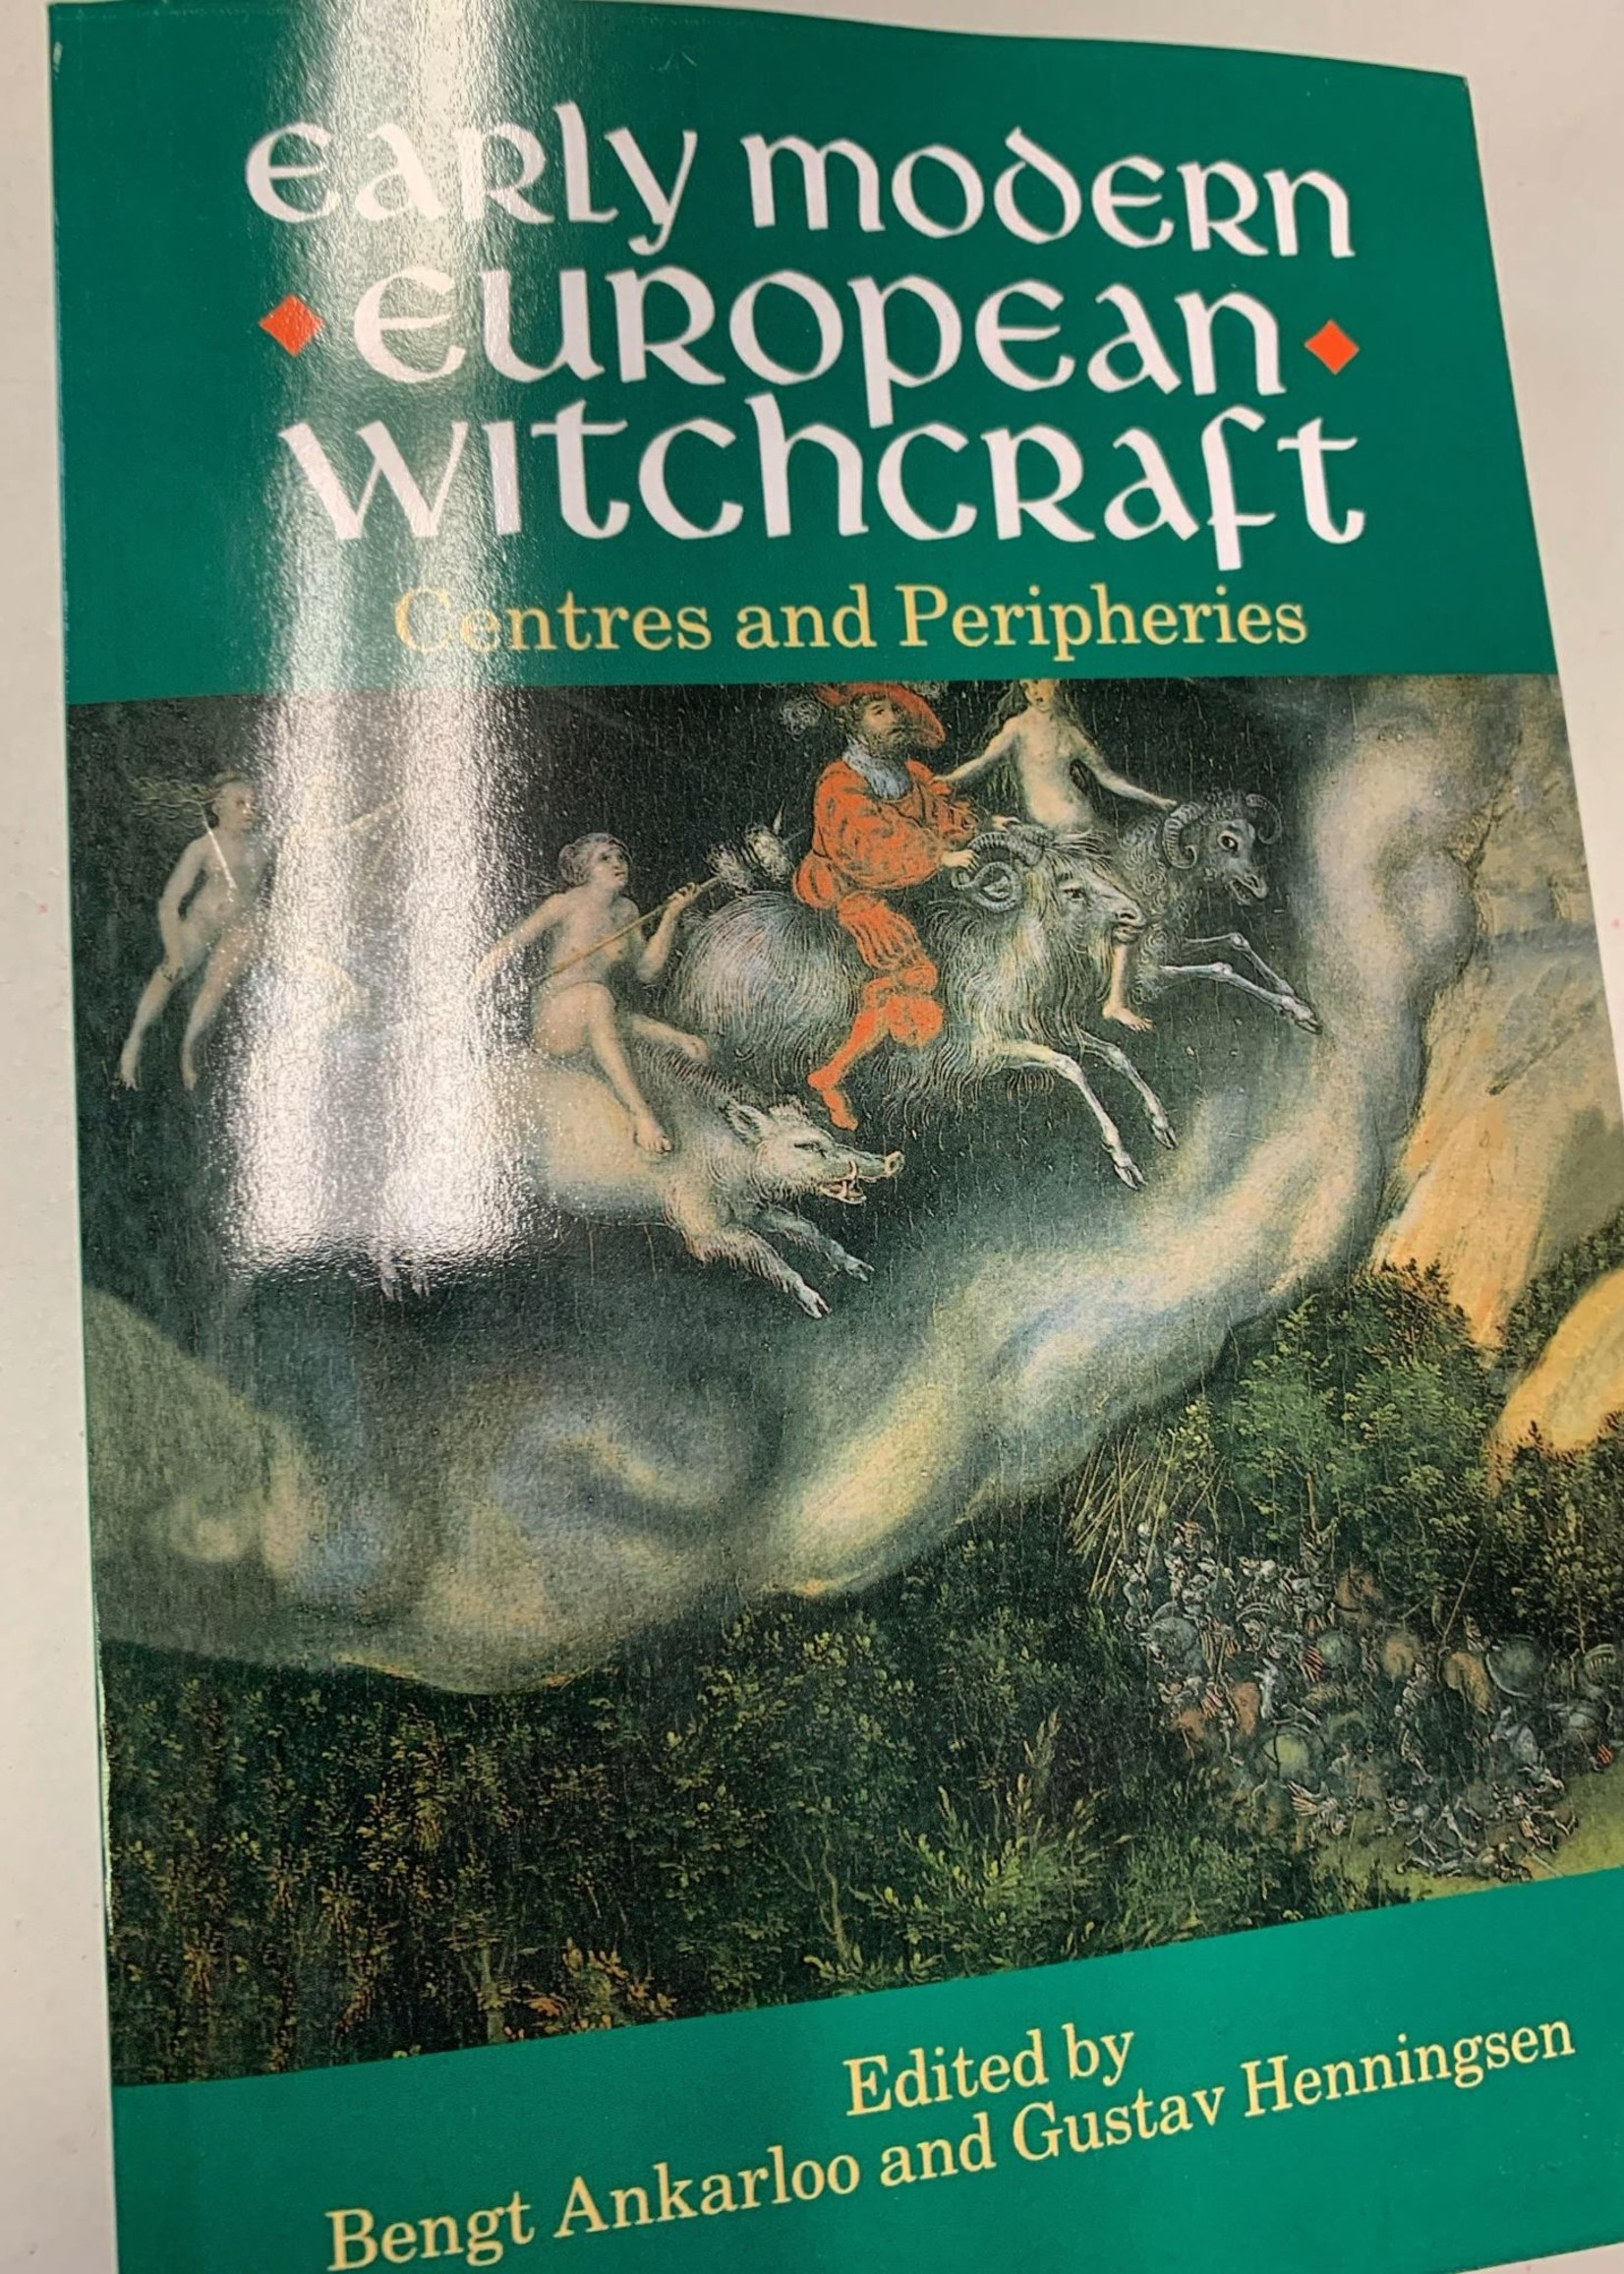 Early Modern European Witchcraft - Centres and Peripheries - Edited by Bengt Ankarloo and Gustav Henningse